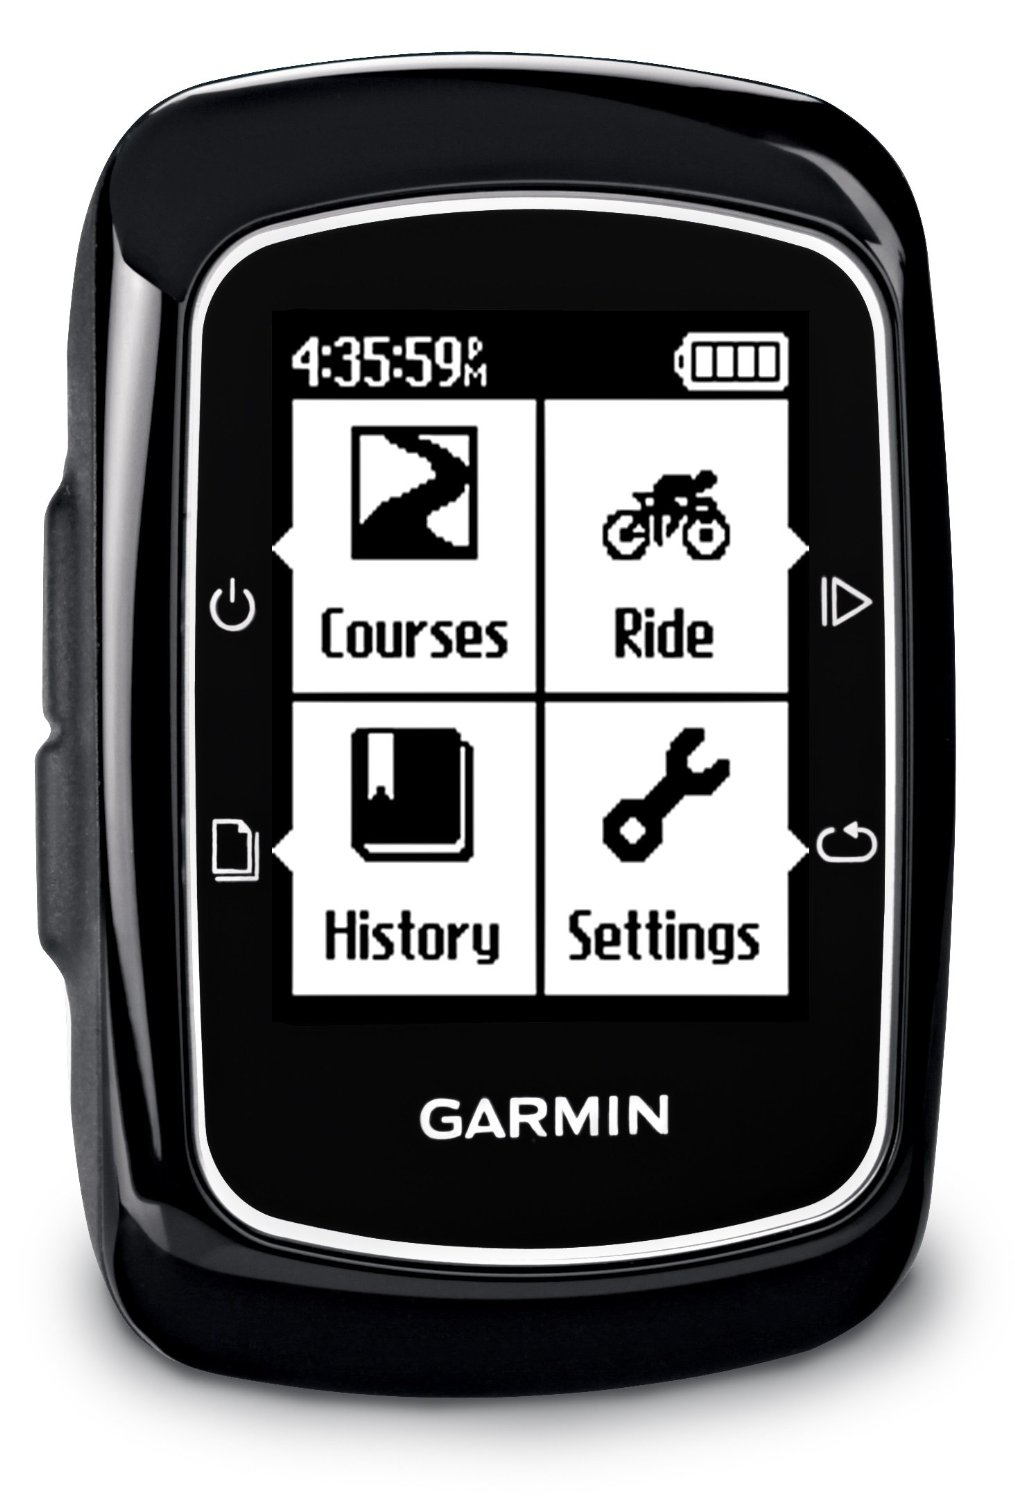 garmin edge 200 im test garmin fahrradcomputer navi gps. Black Bedroom Furniture Sets. Home Design Ideas